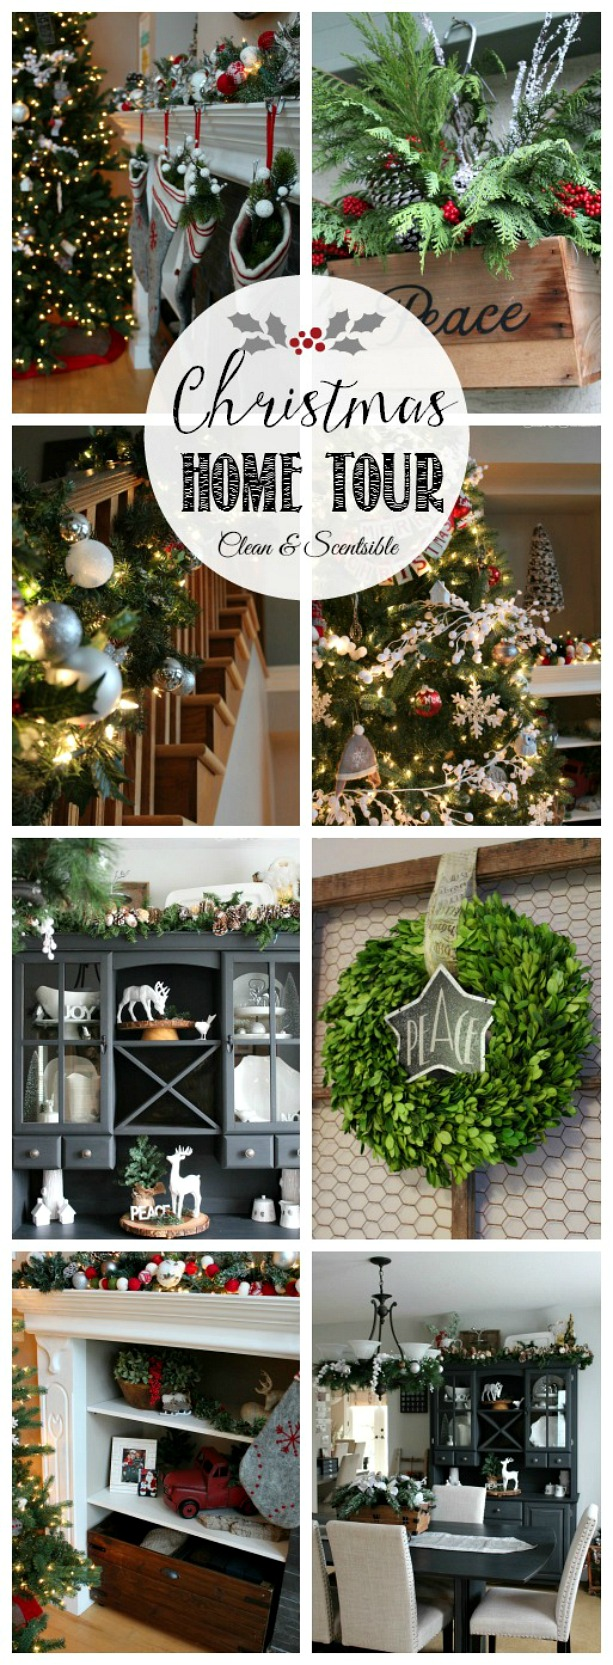 Beautiful Christmas home tour - a must see!